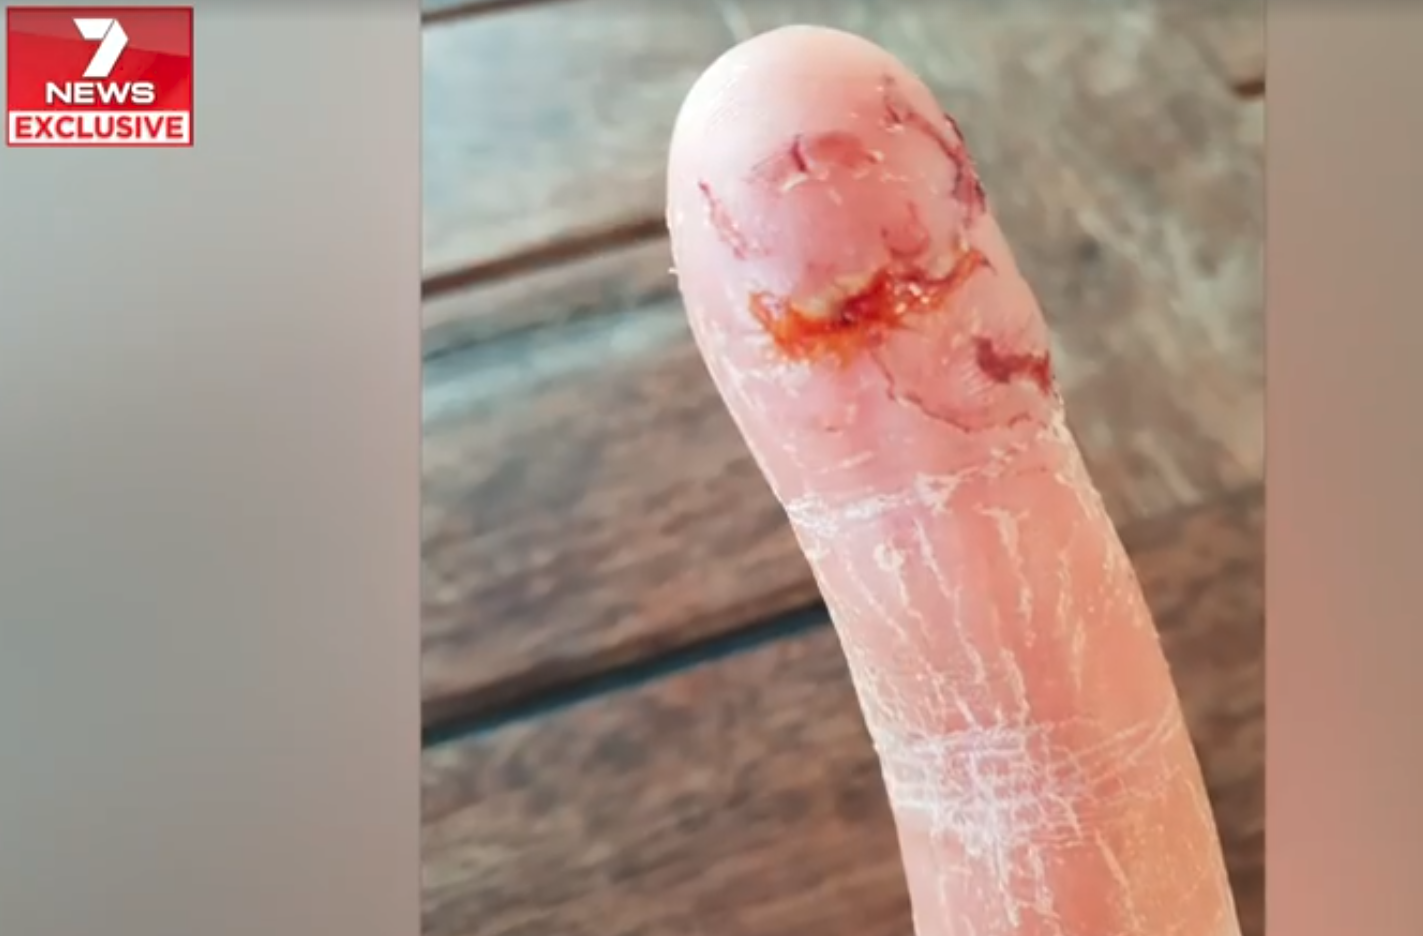 Australian Woman Tries to Feed Shark, But It Was Too Close That Its Teeth Sunk Into Her Finger